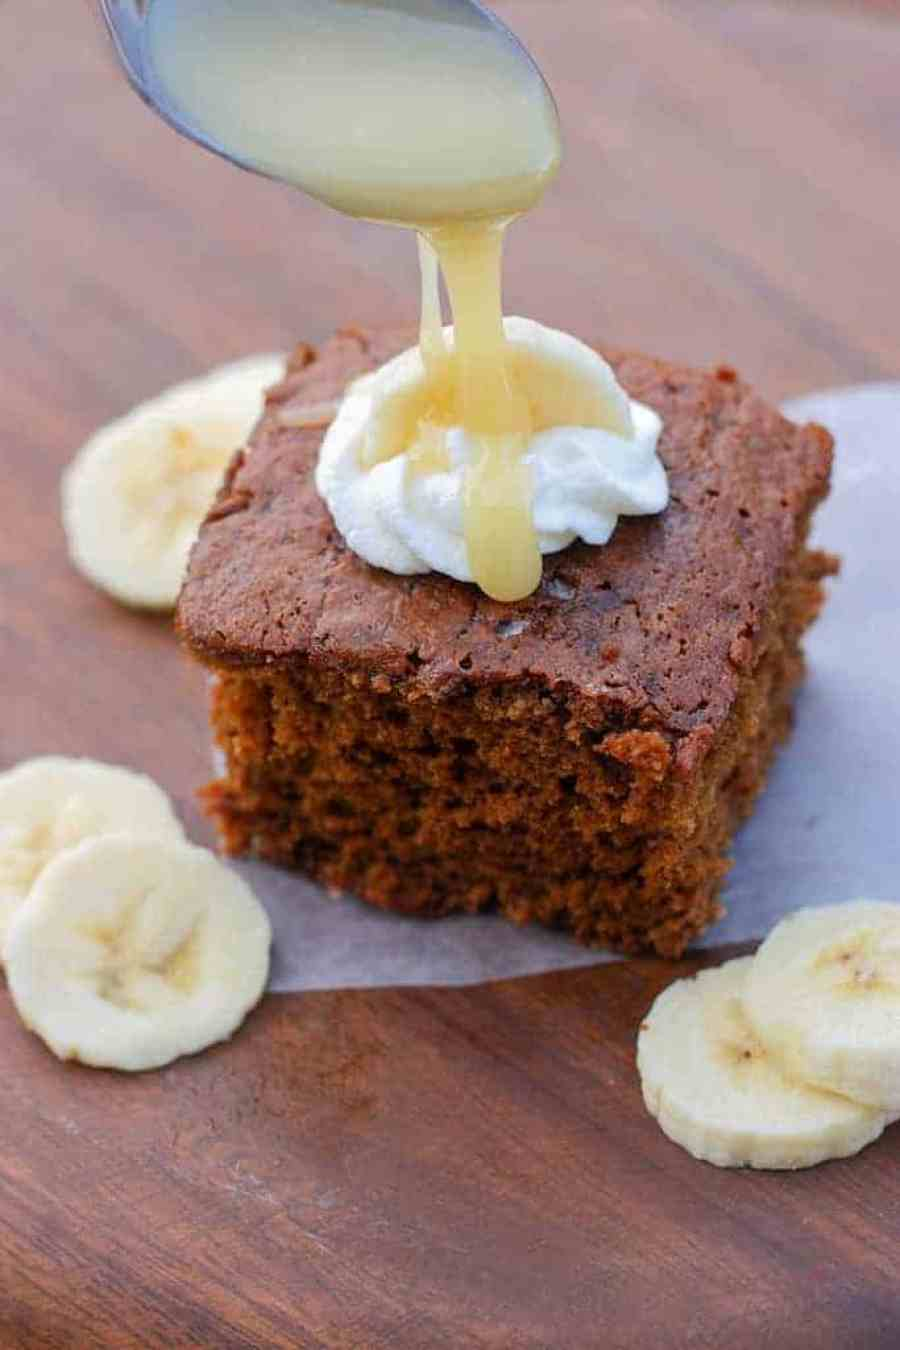 Gingerbread Cake with Vanilla Cream Sauce | Tastes Better From Scratch